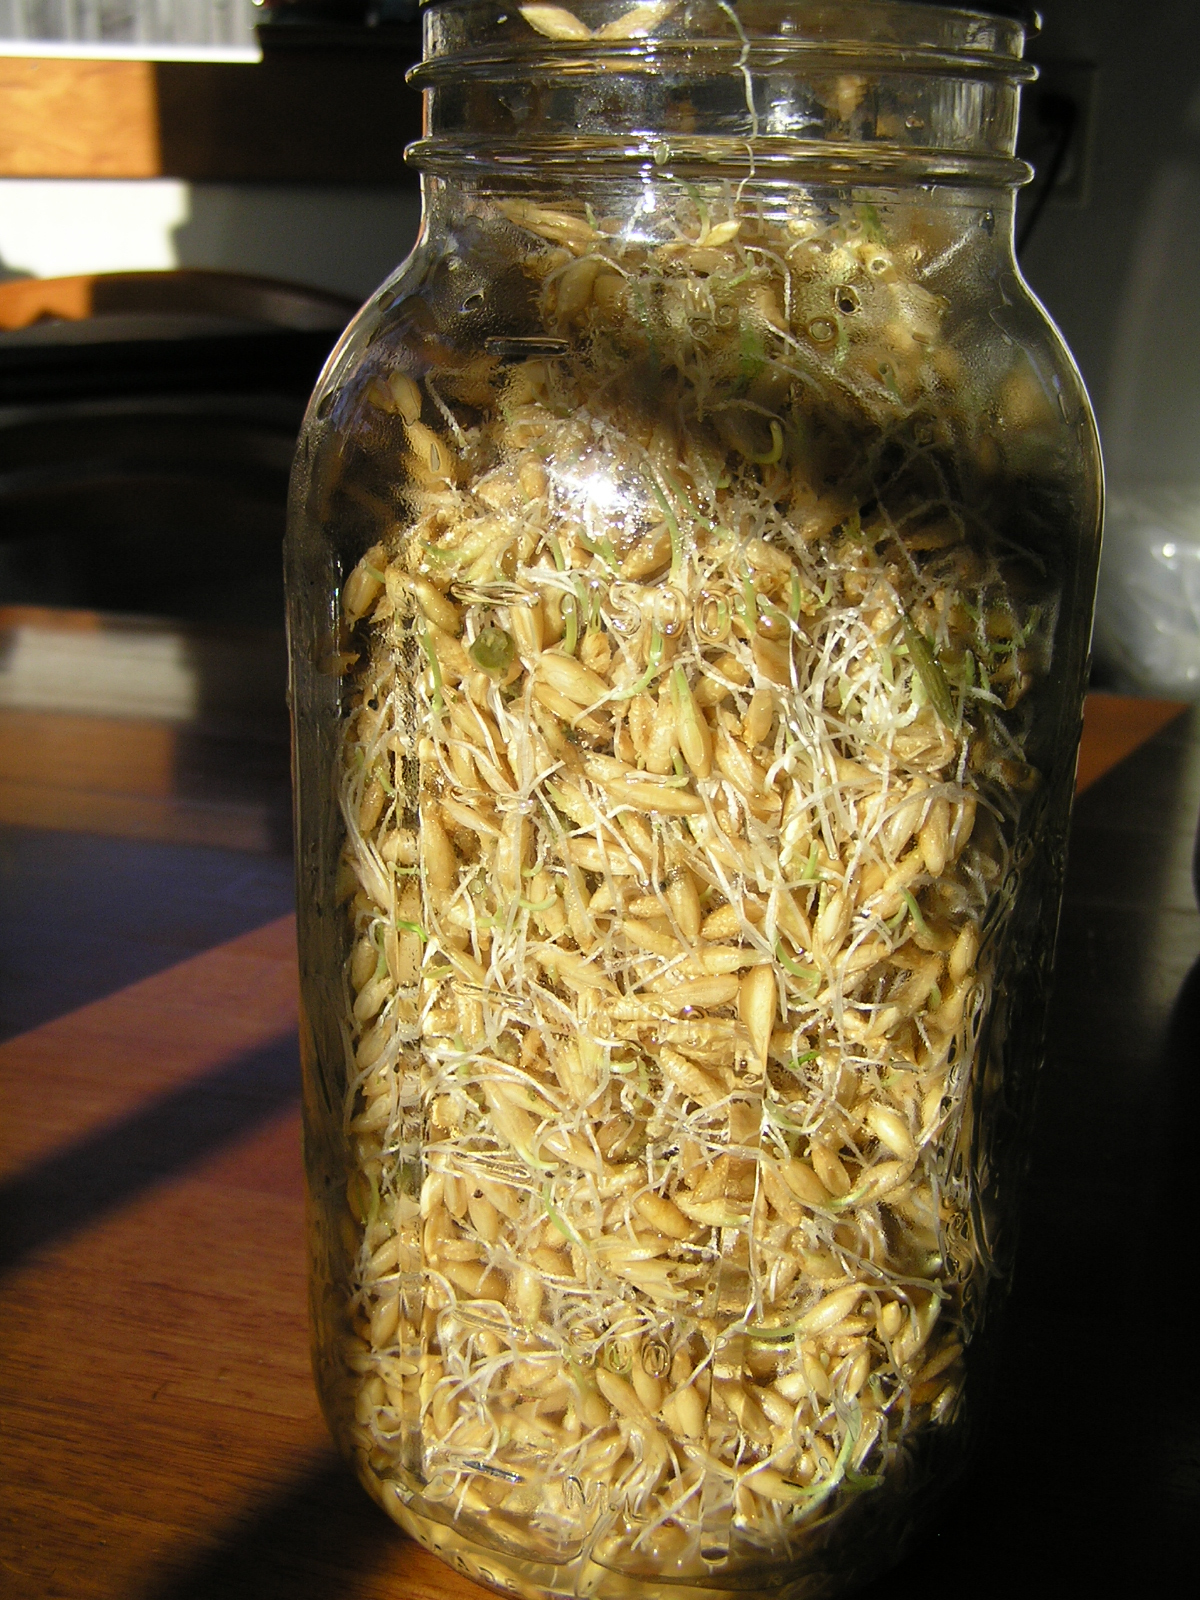 Sprouted Grains for Chickens - A Life Unprocessed